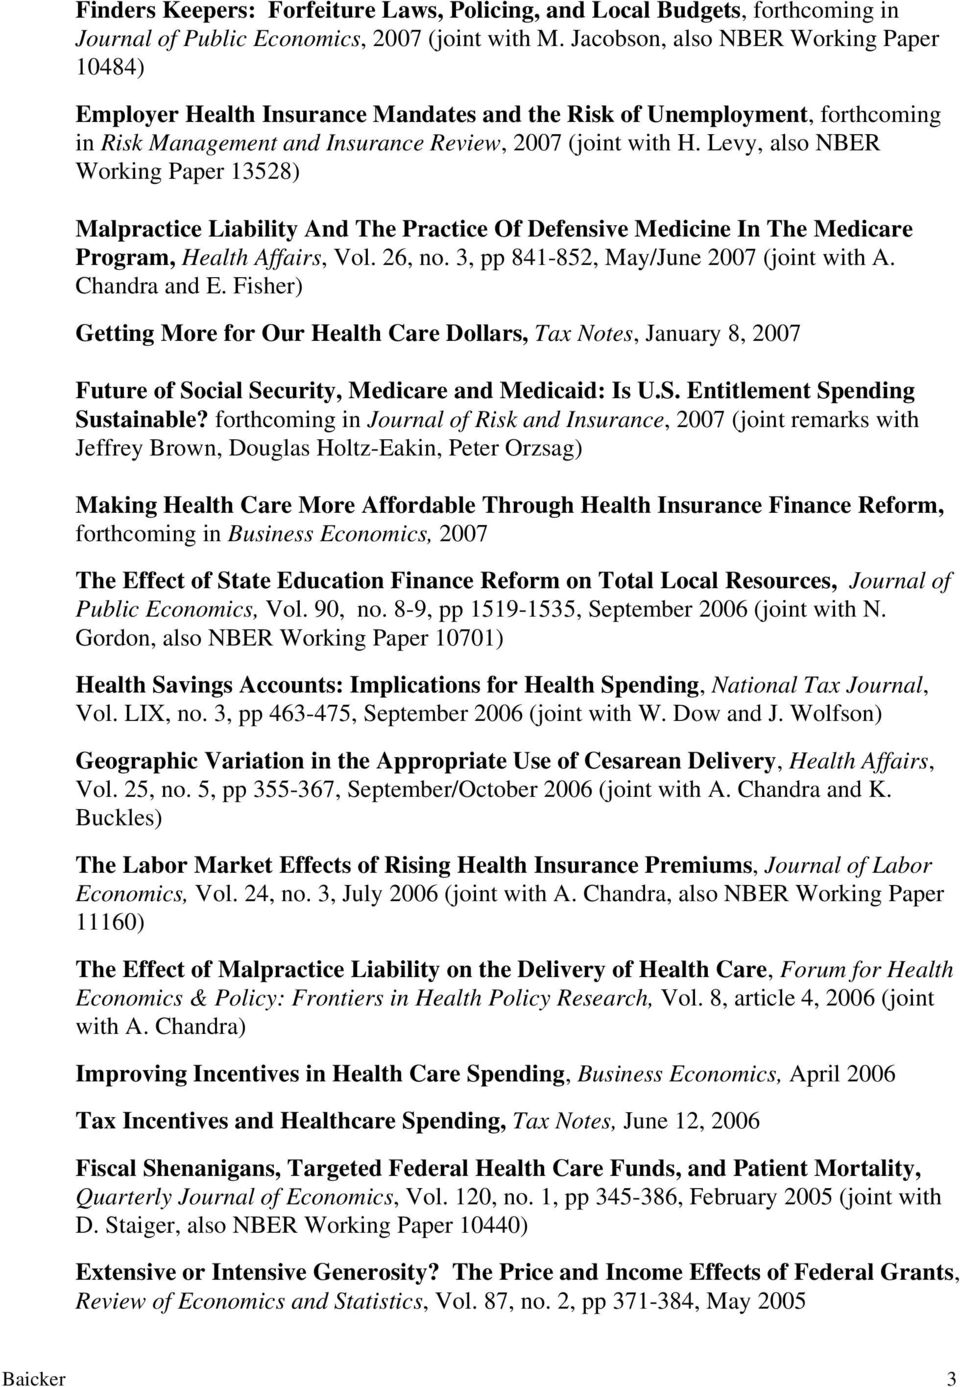 Levy, also NBER Working Paper 13528) Malpractice Liability And The Practice Of Defensive Medicine In The Medicare Program, Health Affairs, Vol. 26, no. 3, pp 841-852, May/June 2007 (joint with A.